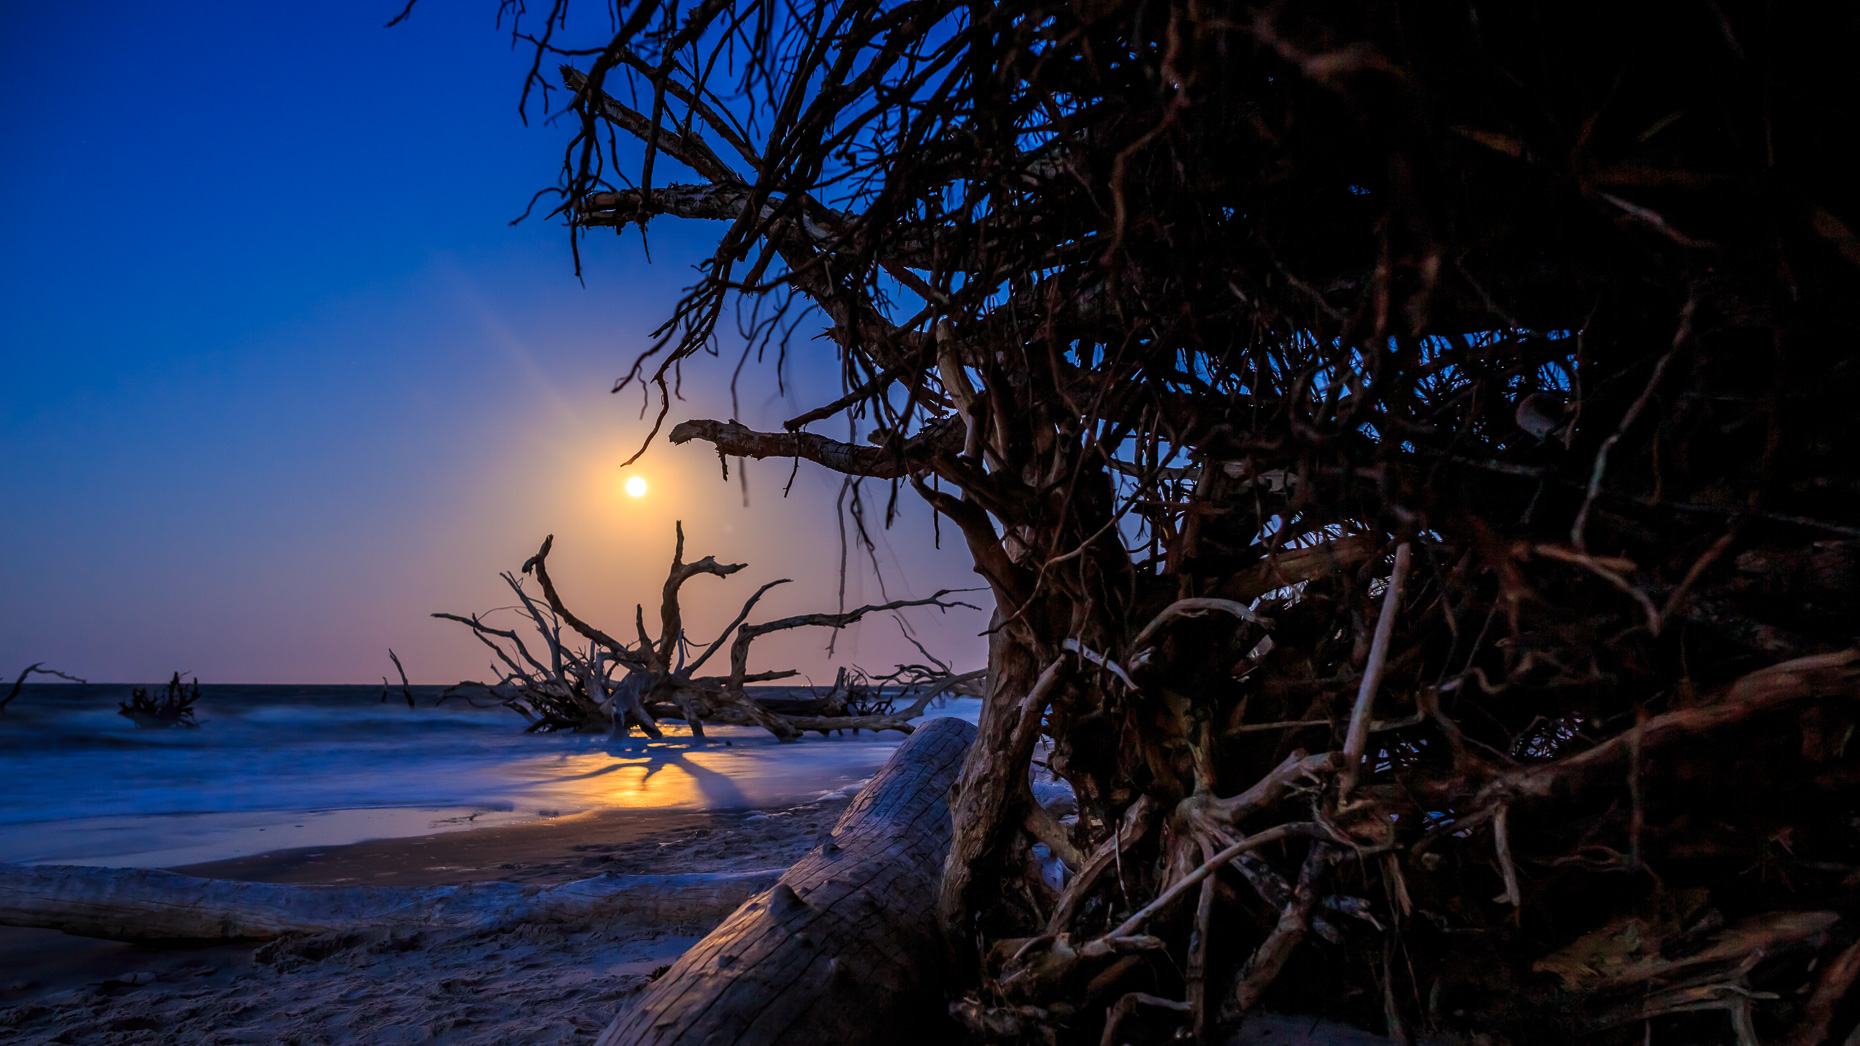 The full moon rises over the trees on Big Talbot Island Florida